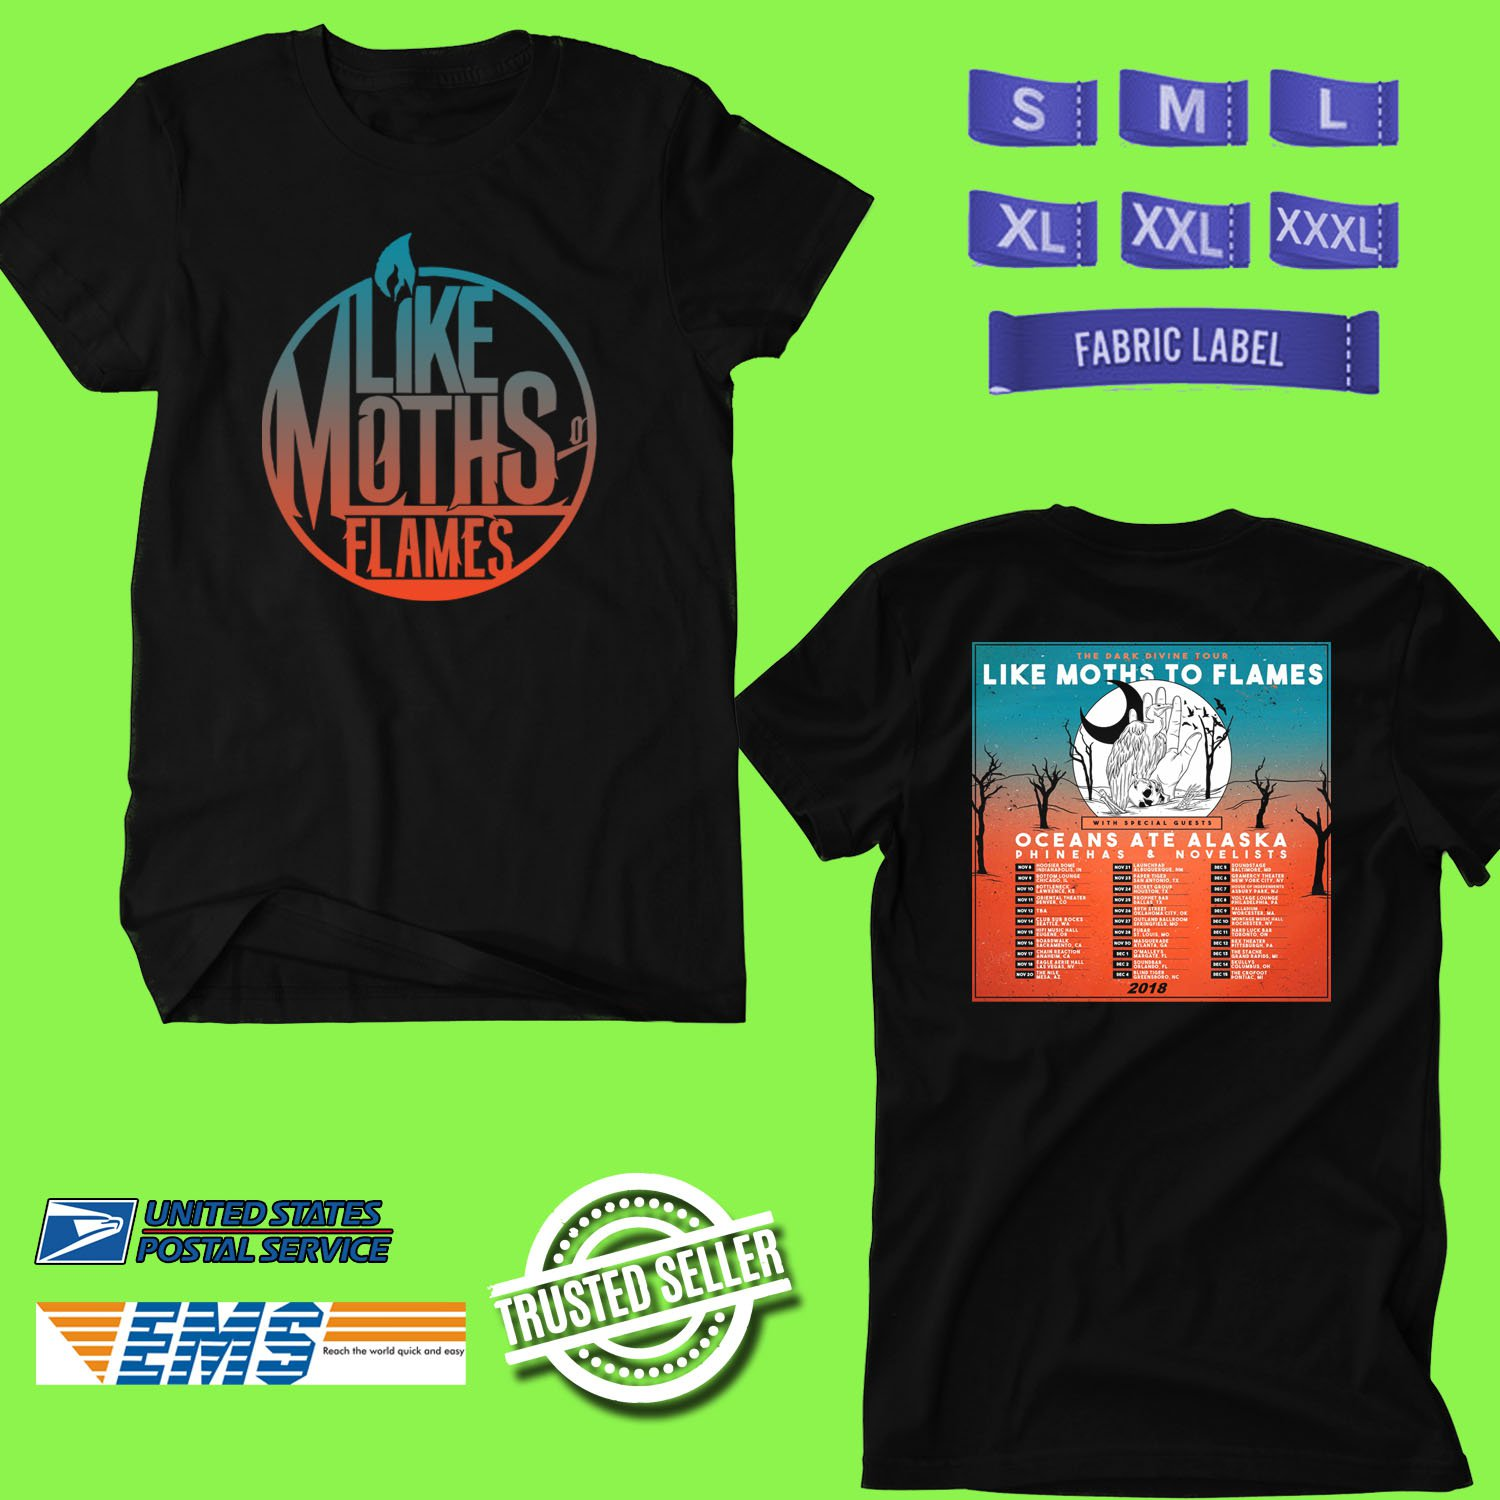 CONCERT 2018 LIKE MOTHS TO FLAMES THE DARK DIVINE TOUR BLACK TEE DATES CODE EP01